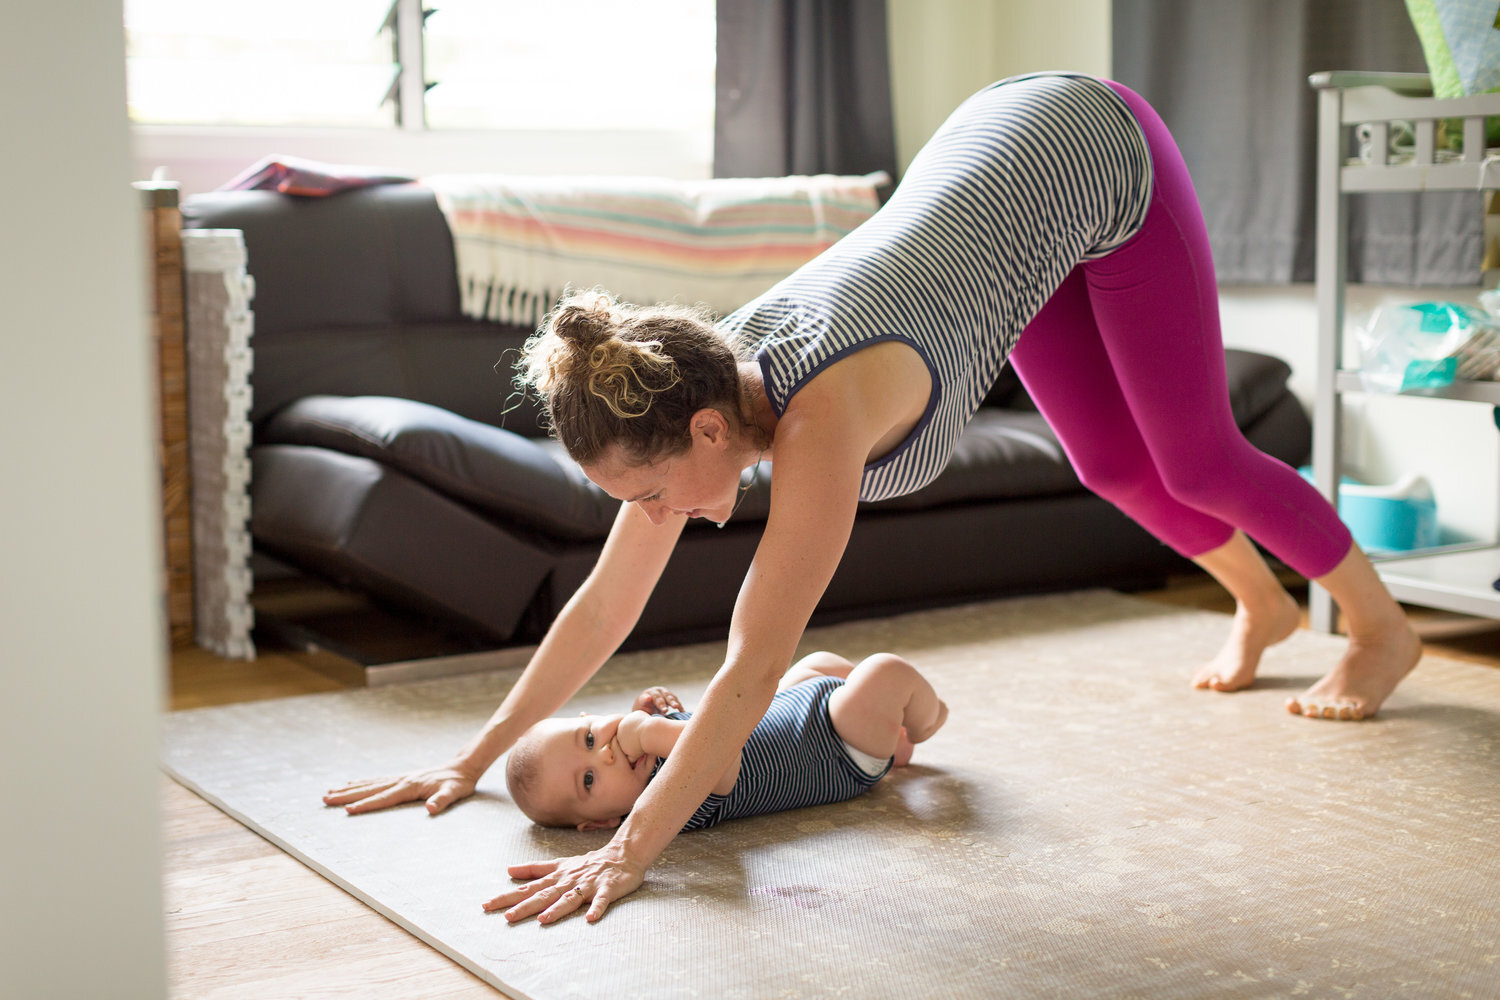 Play on the mat with your baby for both their enjoyment and yours